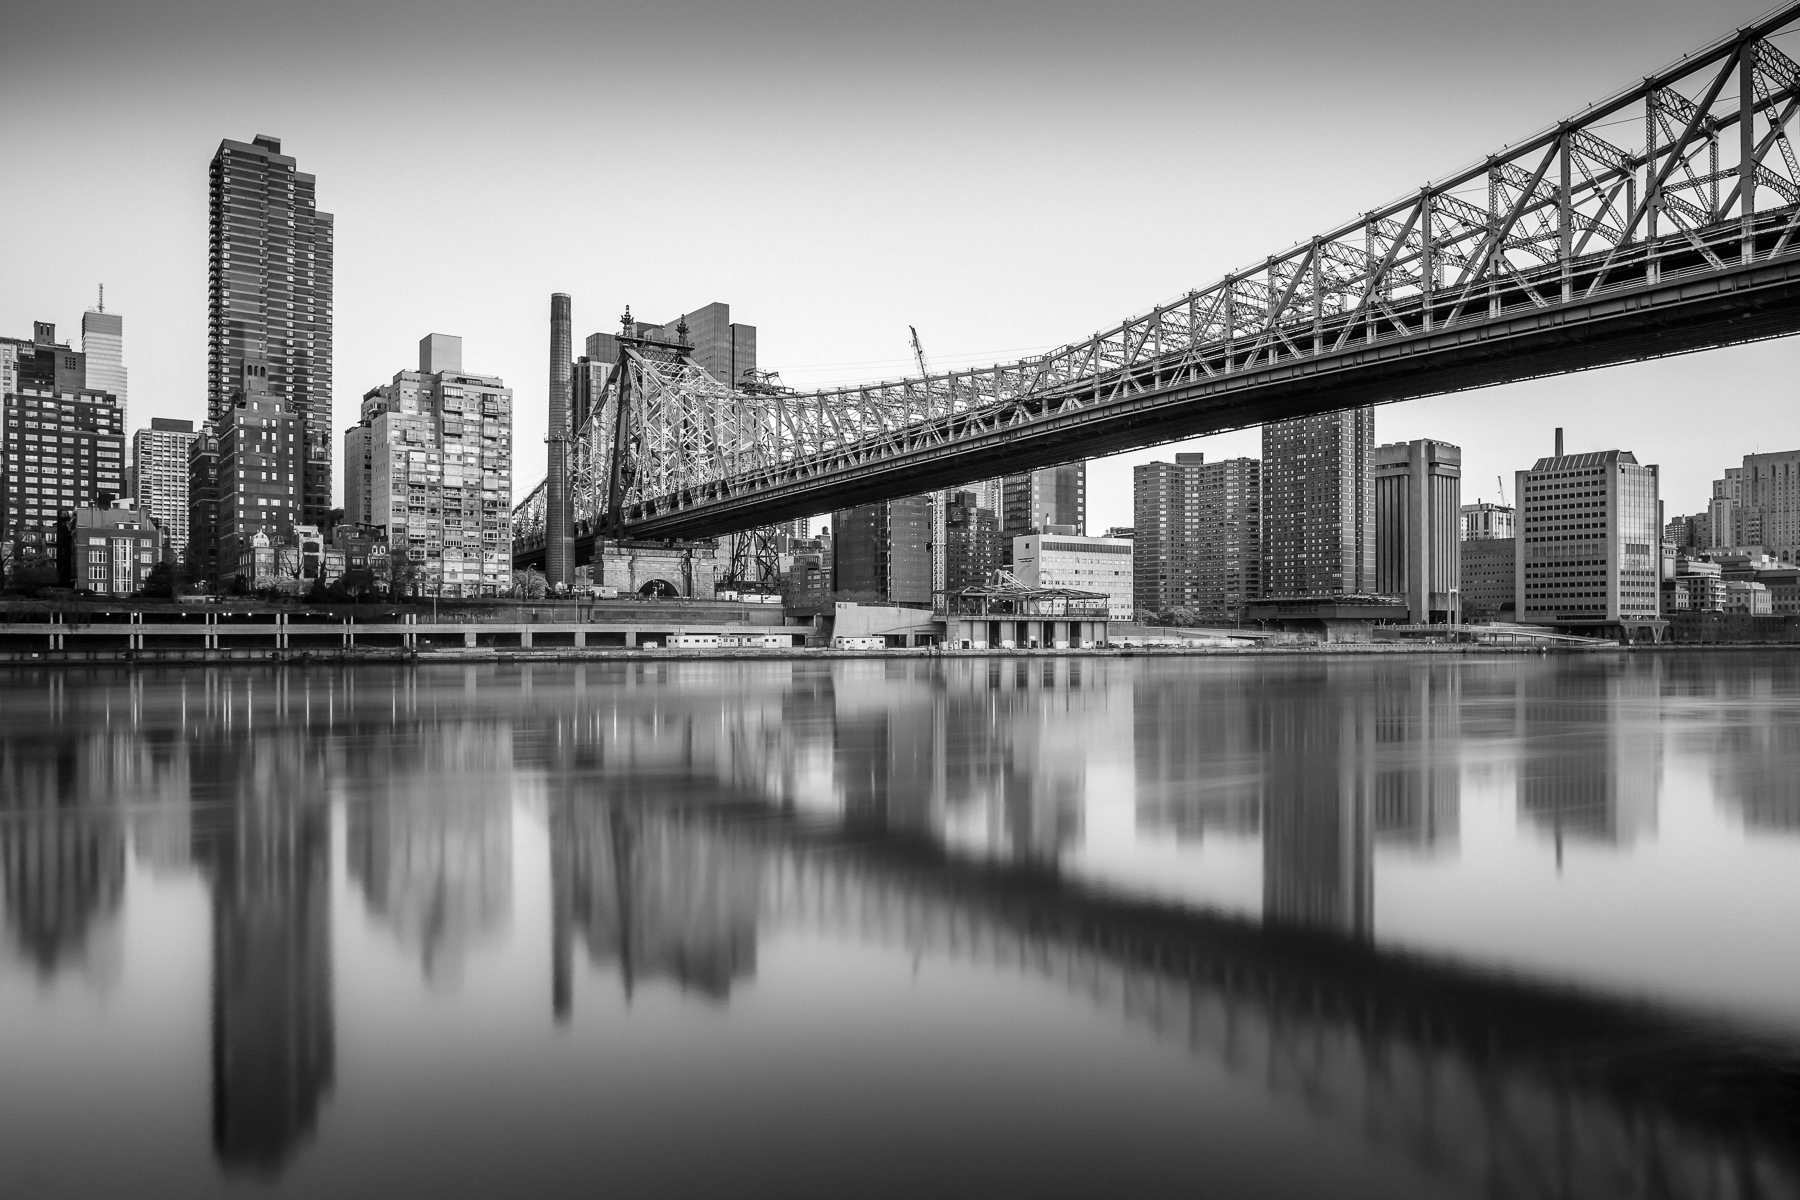 queensboro bridge black and white reflections